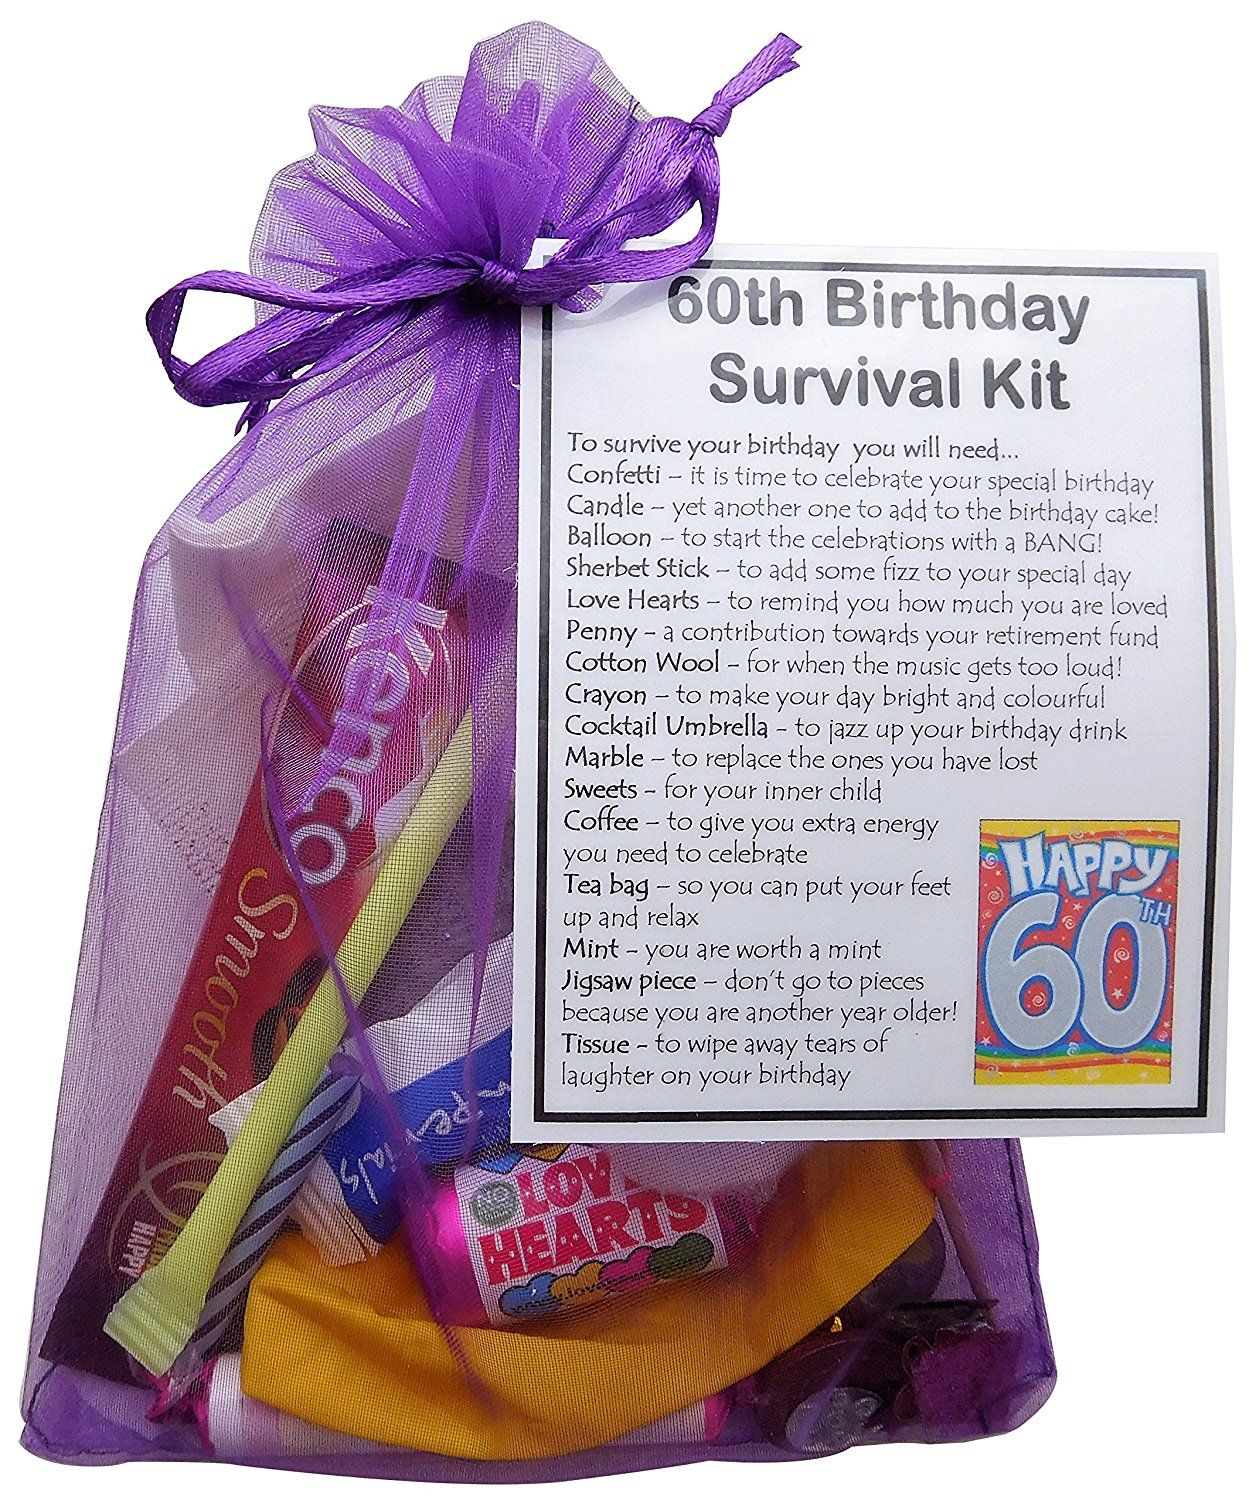 18th Birthday Survival Kit Birthday Gift Novelty Present: Unique Novelty Survival Kit